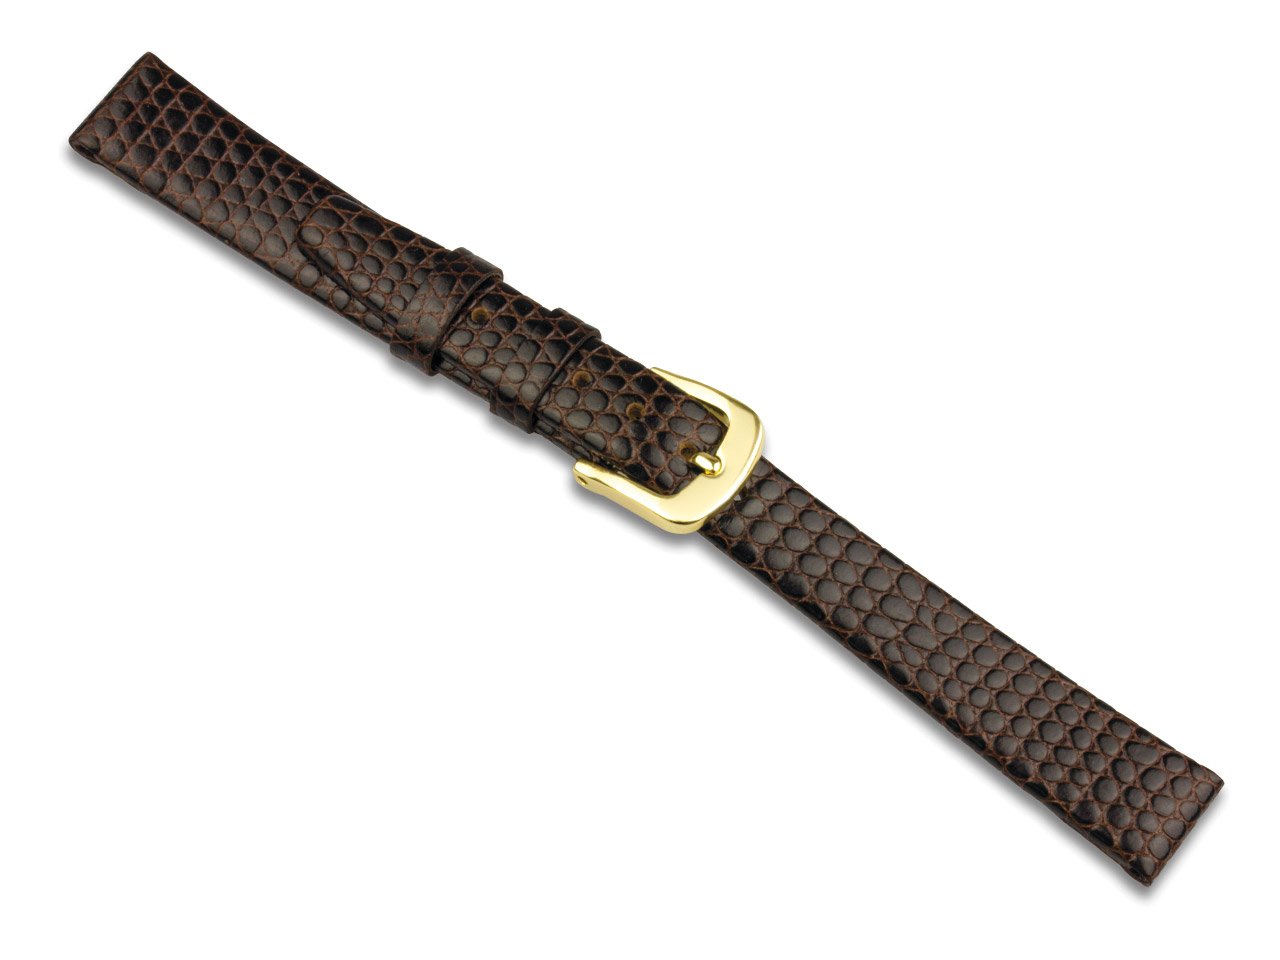 Brown Lizard Grain Watch Strap 16mm Genuine Leather